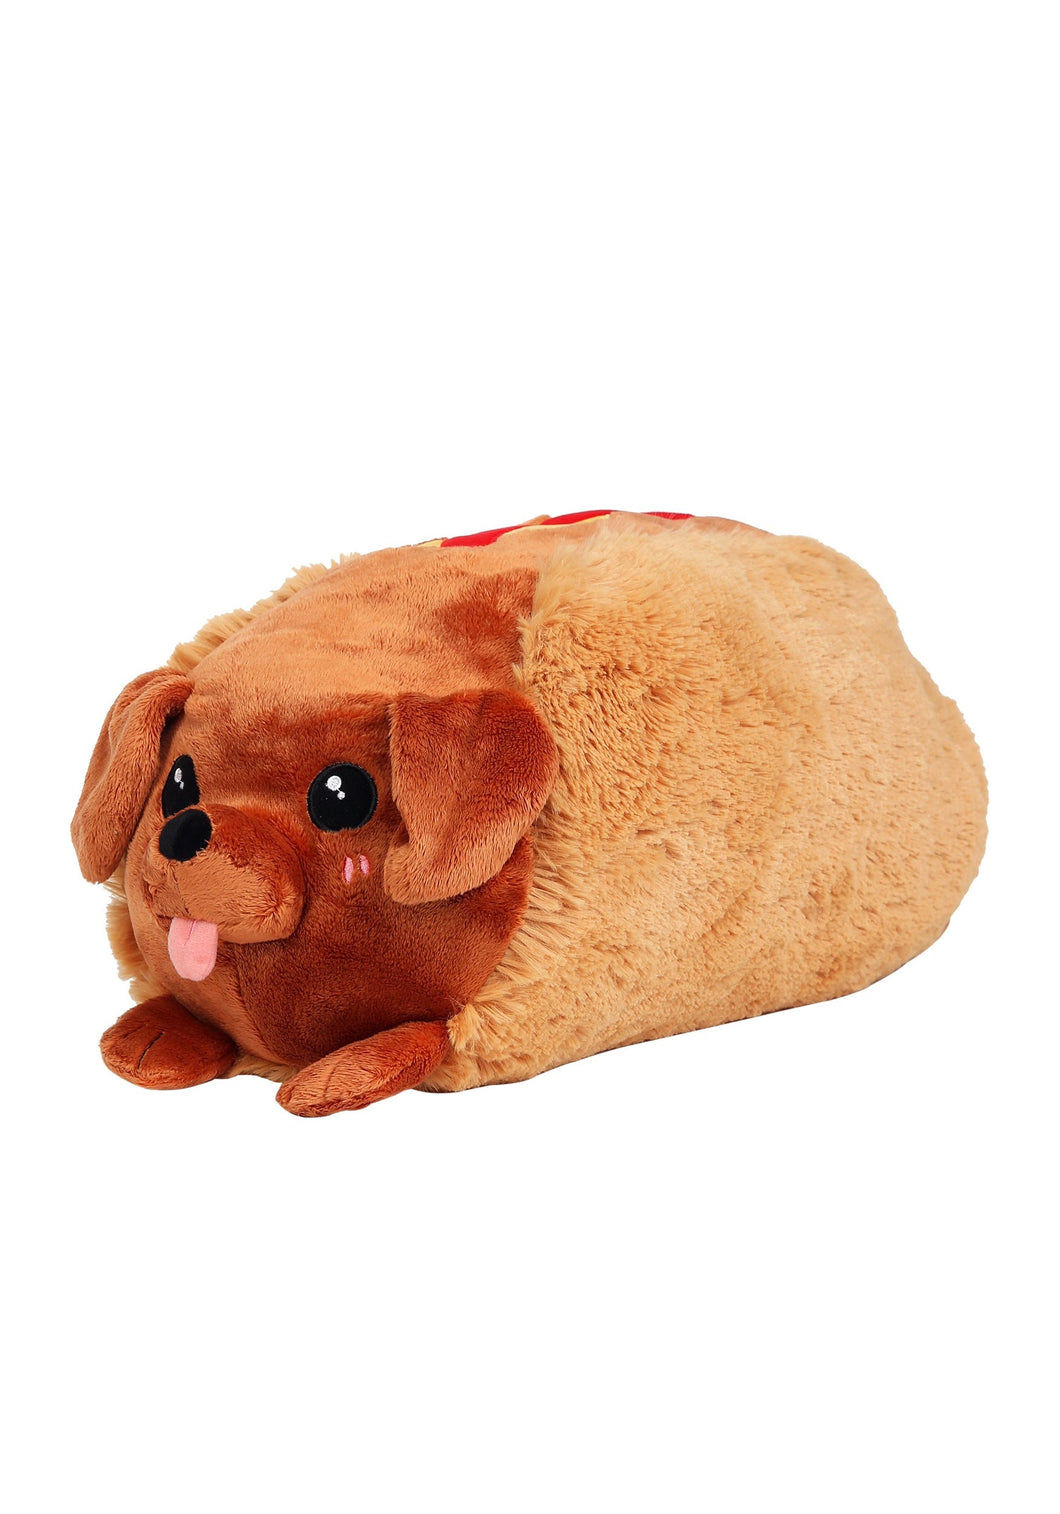 Dachsund Hot Dog Squishable